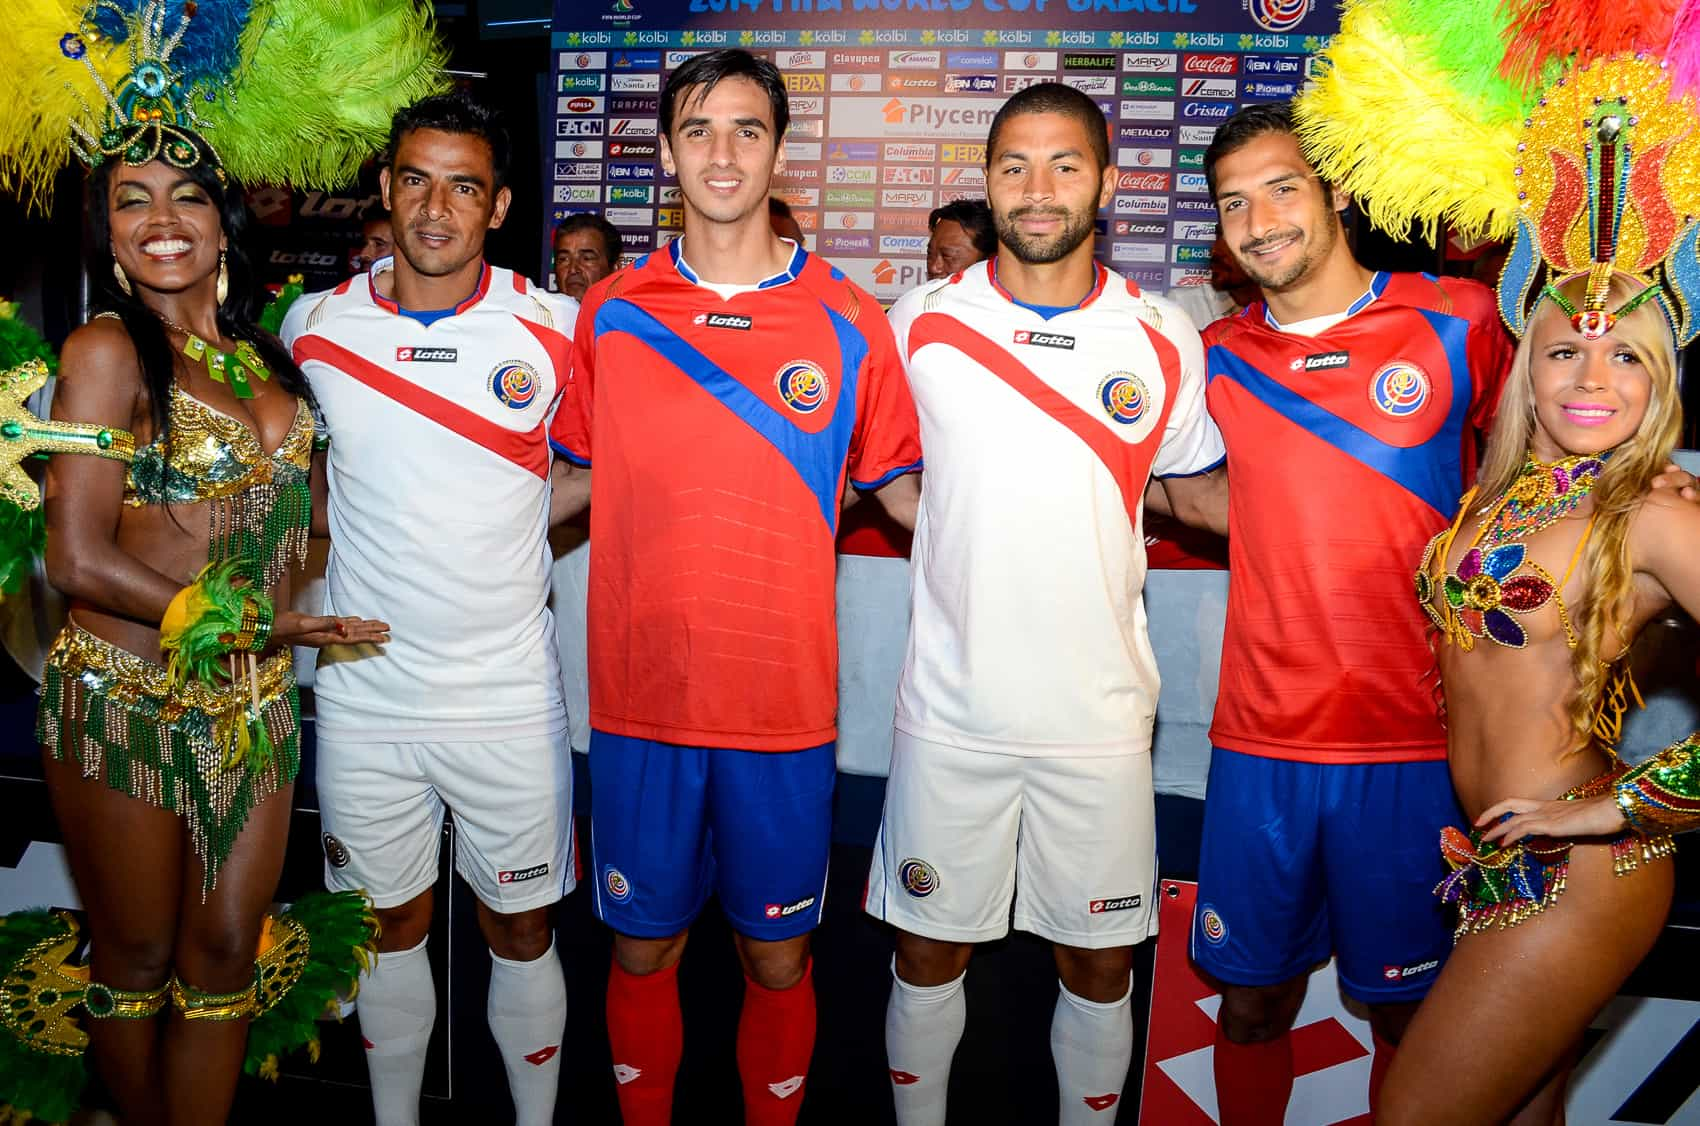 f95bf7008 Costa Rica and team sponsor Lotto revealed the national men s team uniforms  for the 2014 World Cup in Brazil. The presentation took place Monday  evening at ...